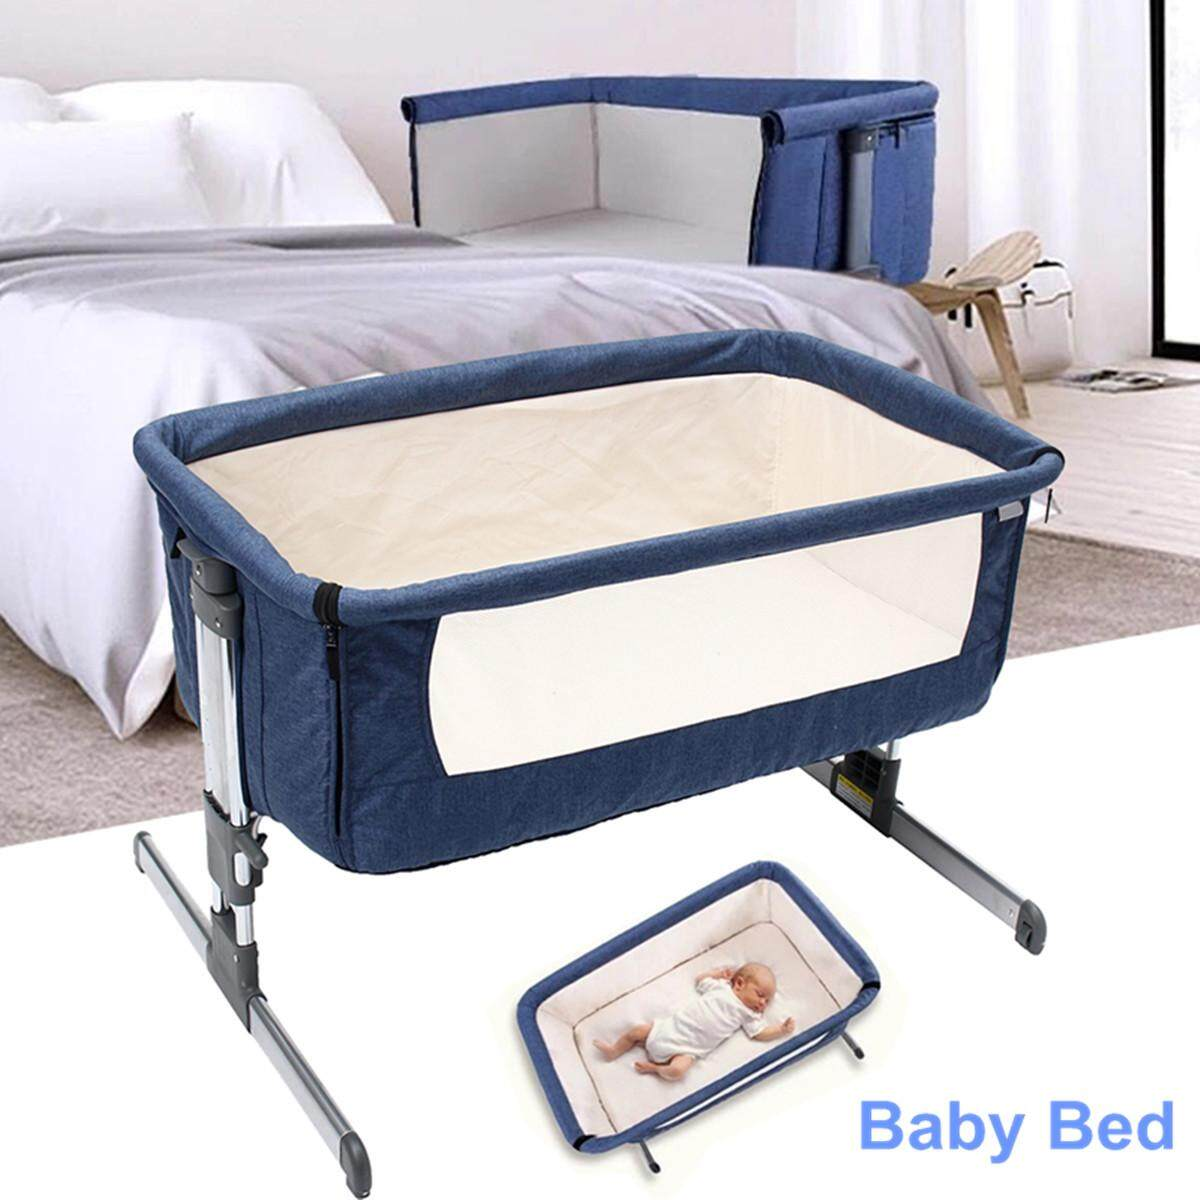 Cosy Time Beside Time Beside Co Sleeper Blue Bassinet Cot Crib Baby Bed By Autoleader.